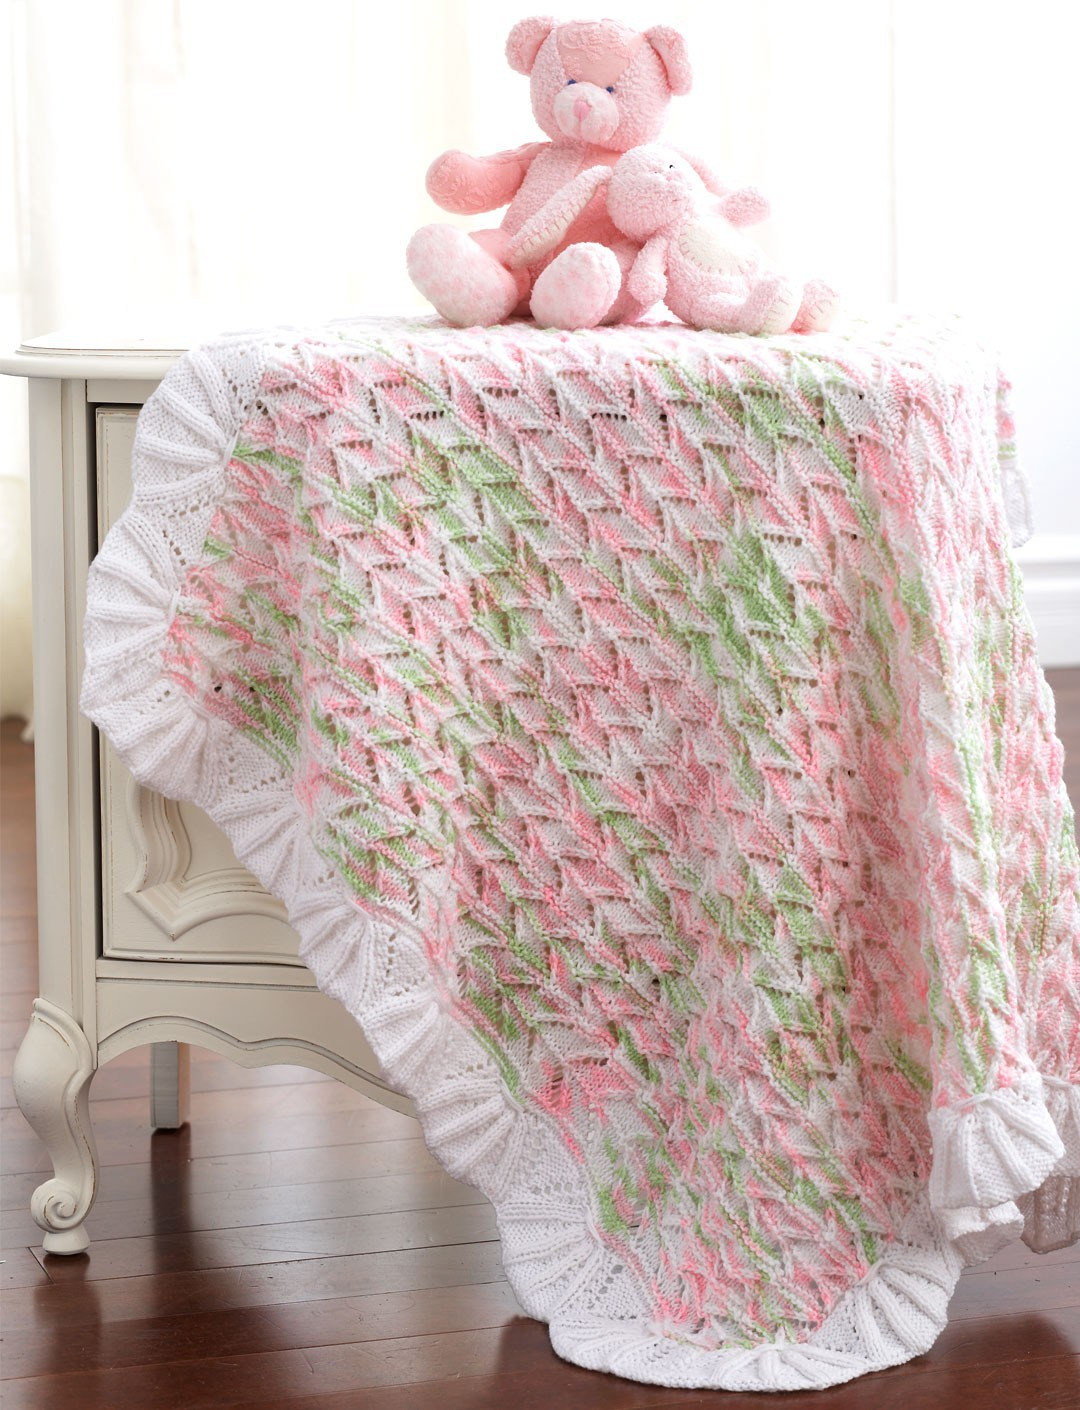 Lovely A some Baby Blanket Knitting Patterns Lace Blanket Of Great 41 Ideas Lace Blanket